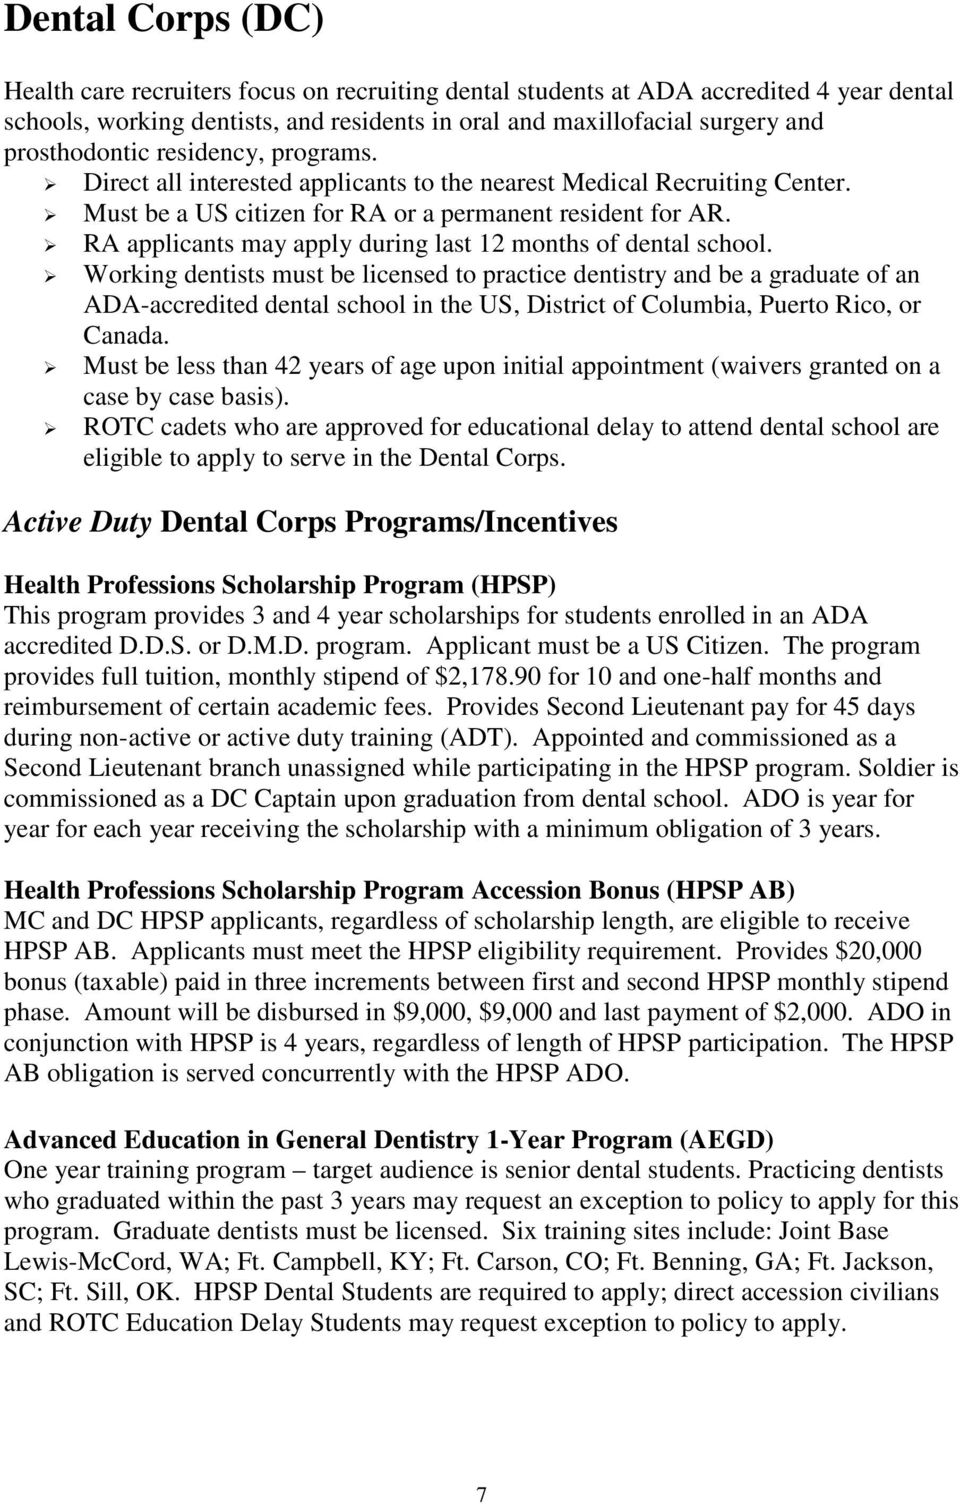 RA applicants may apply during last 12 months of dental school.